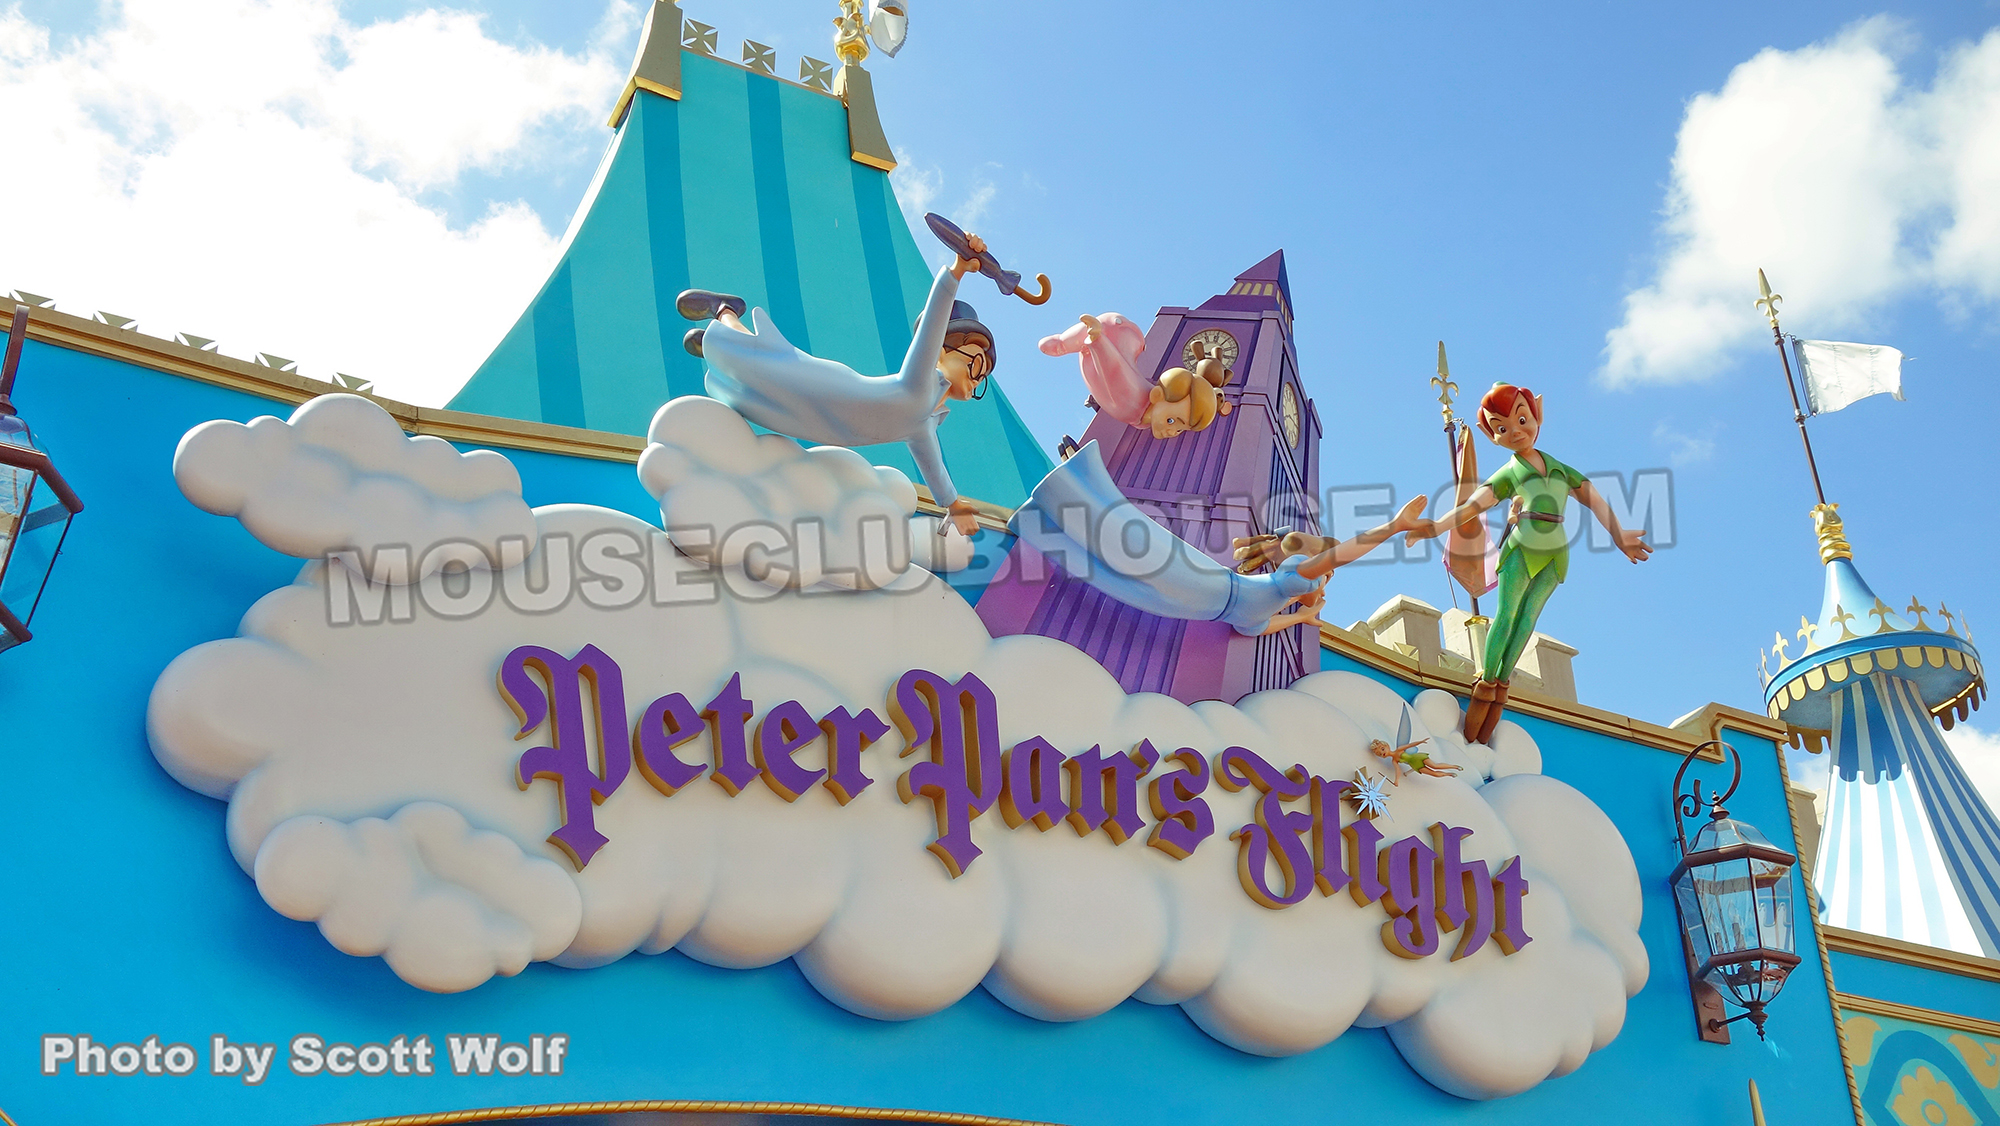 Peter Pan's Flight in the Magic Kingdom in Walt Disney World